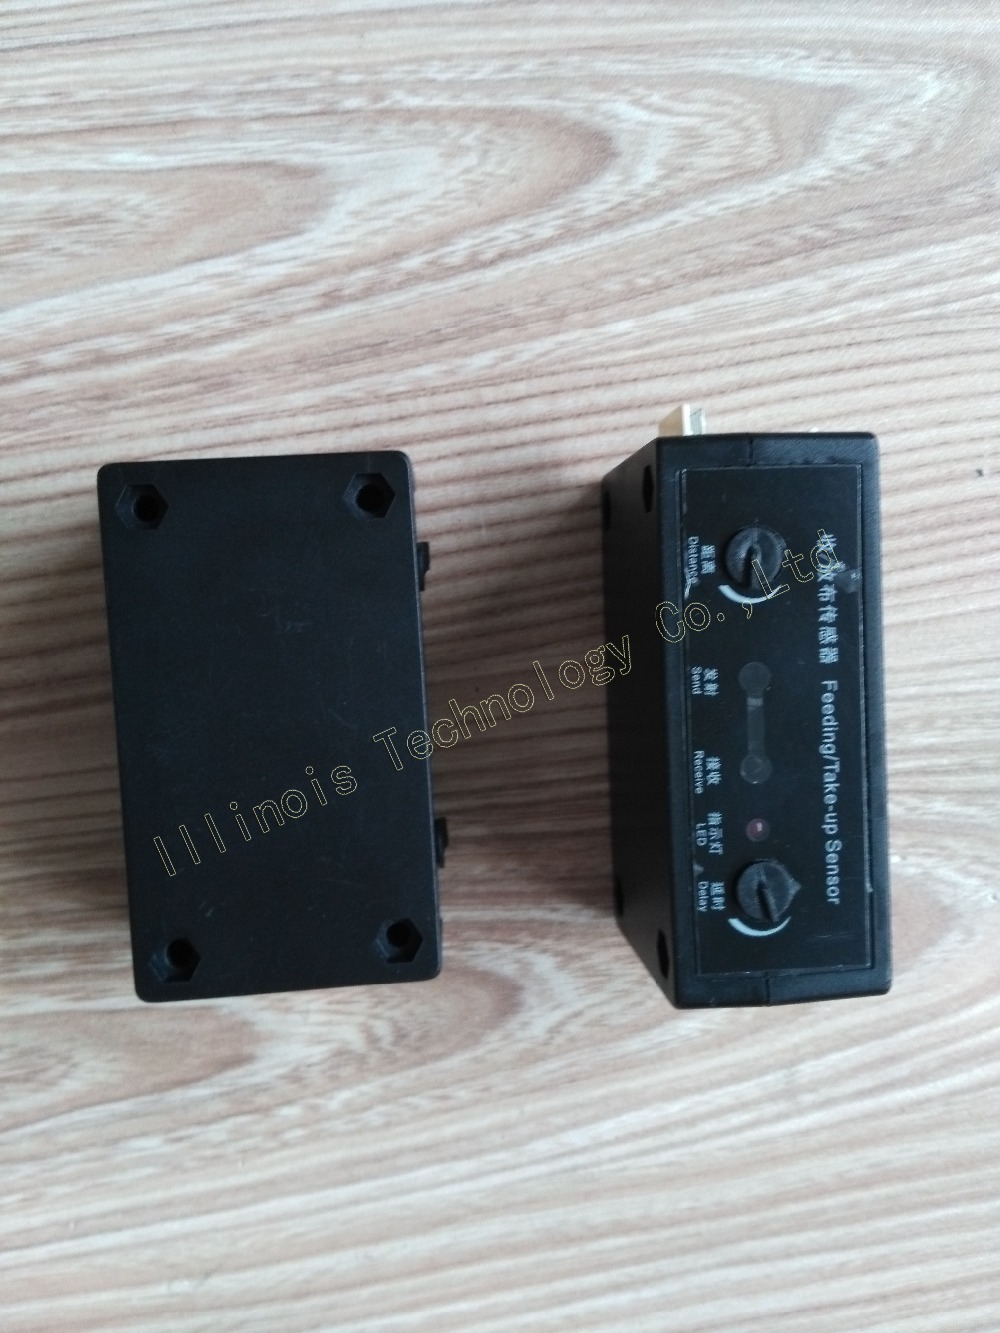 outdoor prineter Feeding/Take-up Sensor printer parts casio hs 3v 1r